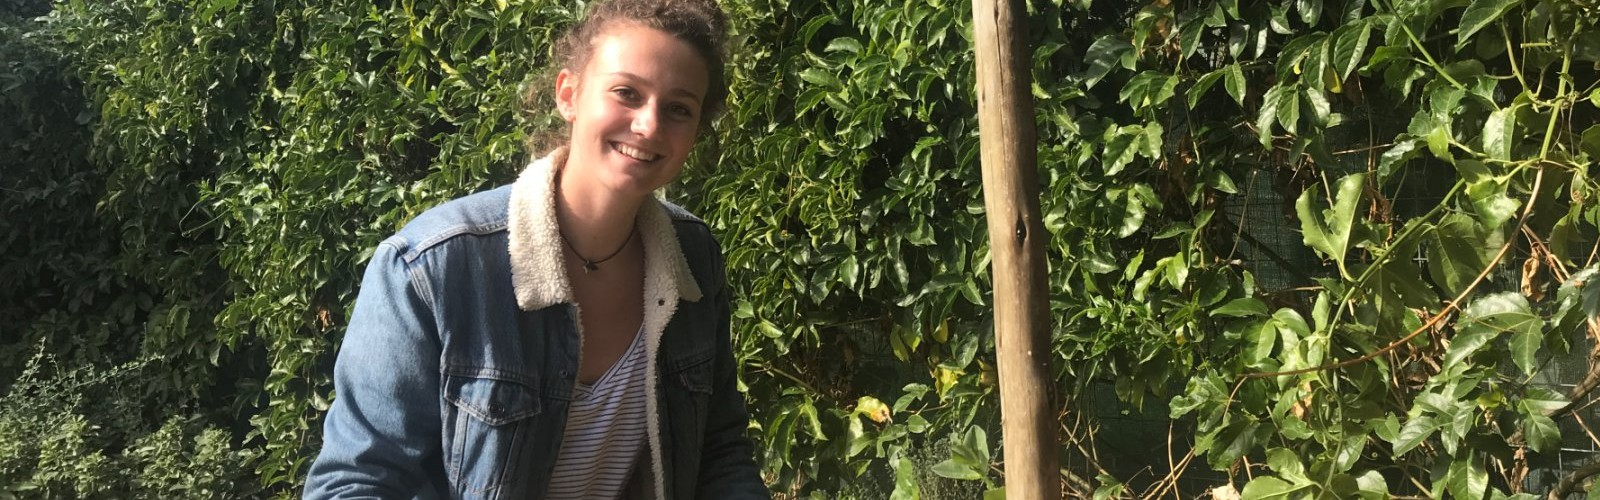 A day with Paula, Food Security and Urban Farming Intern